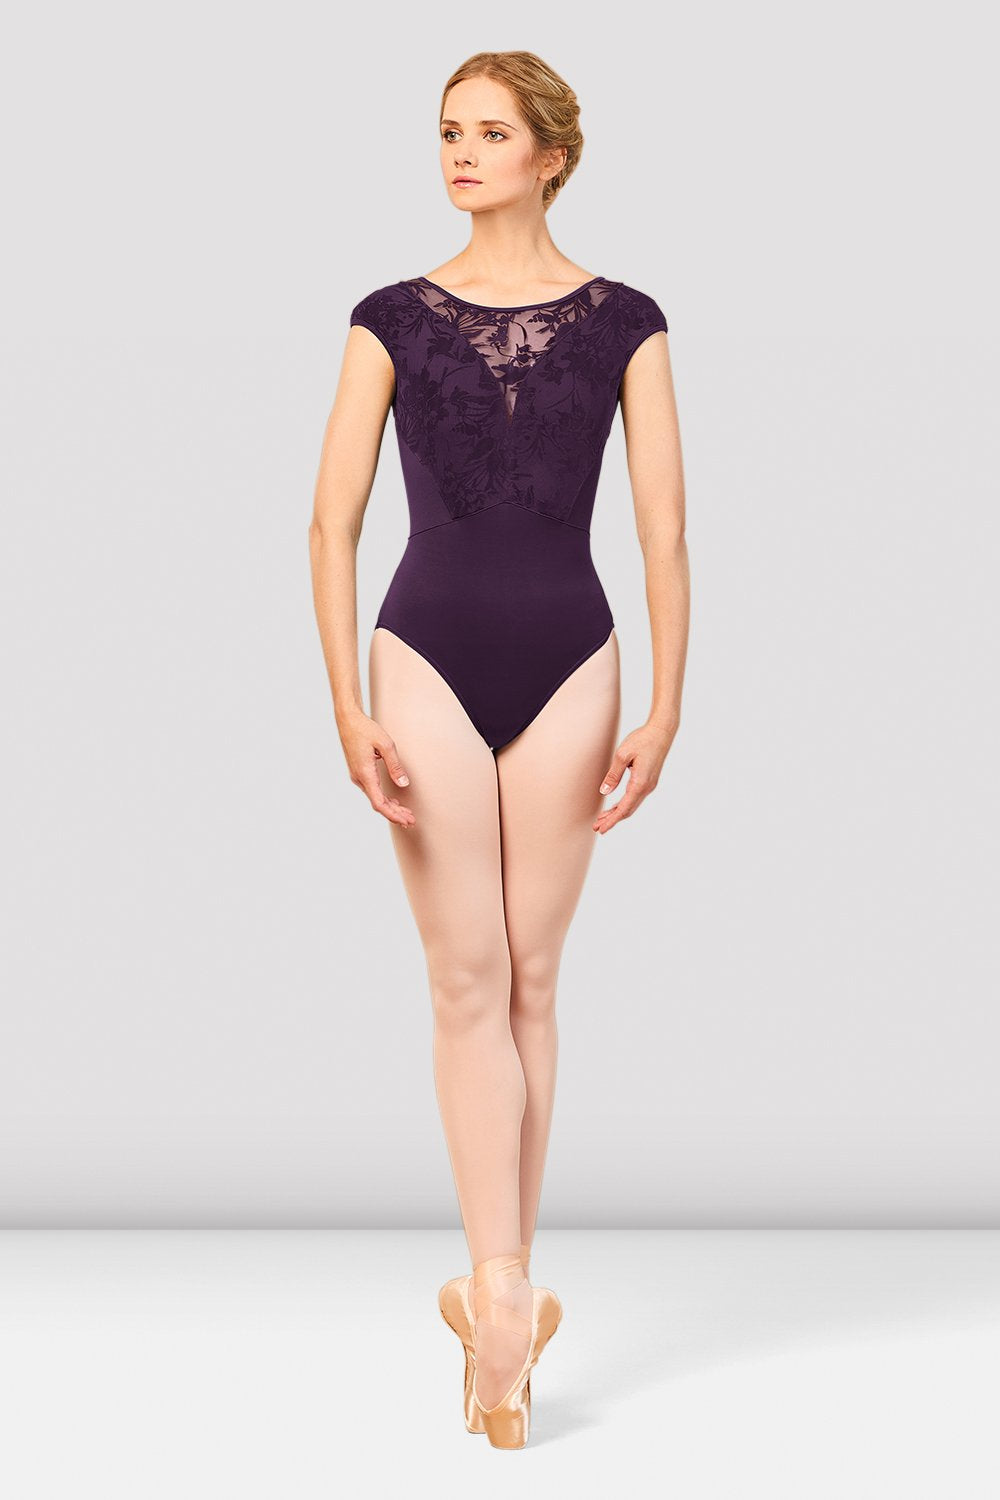 Ladies Cosmo Open Back Cap Sleeve Leotard - BLOCH US